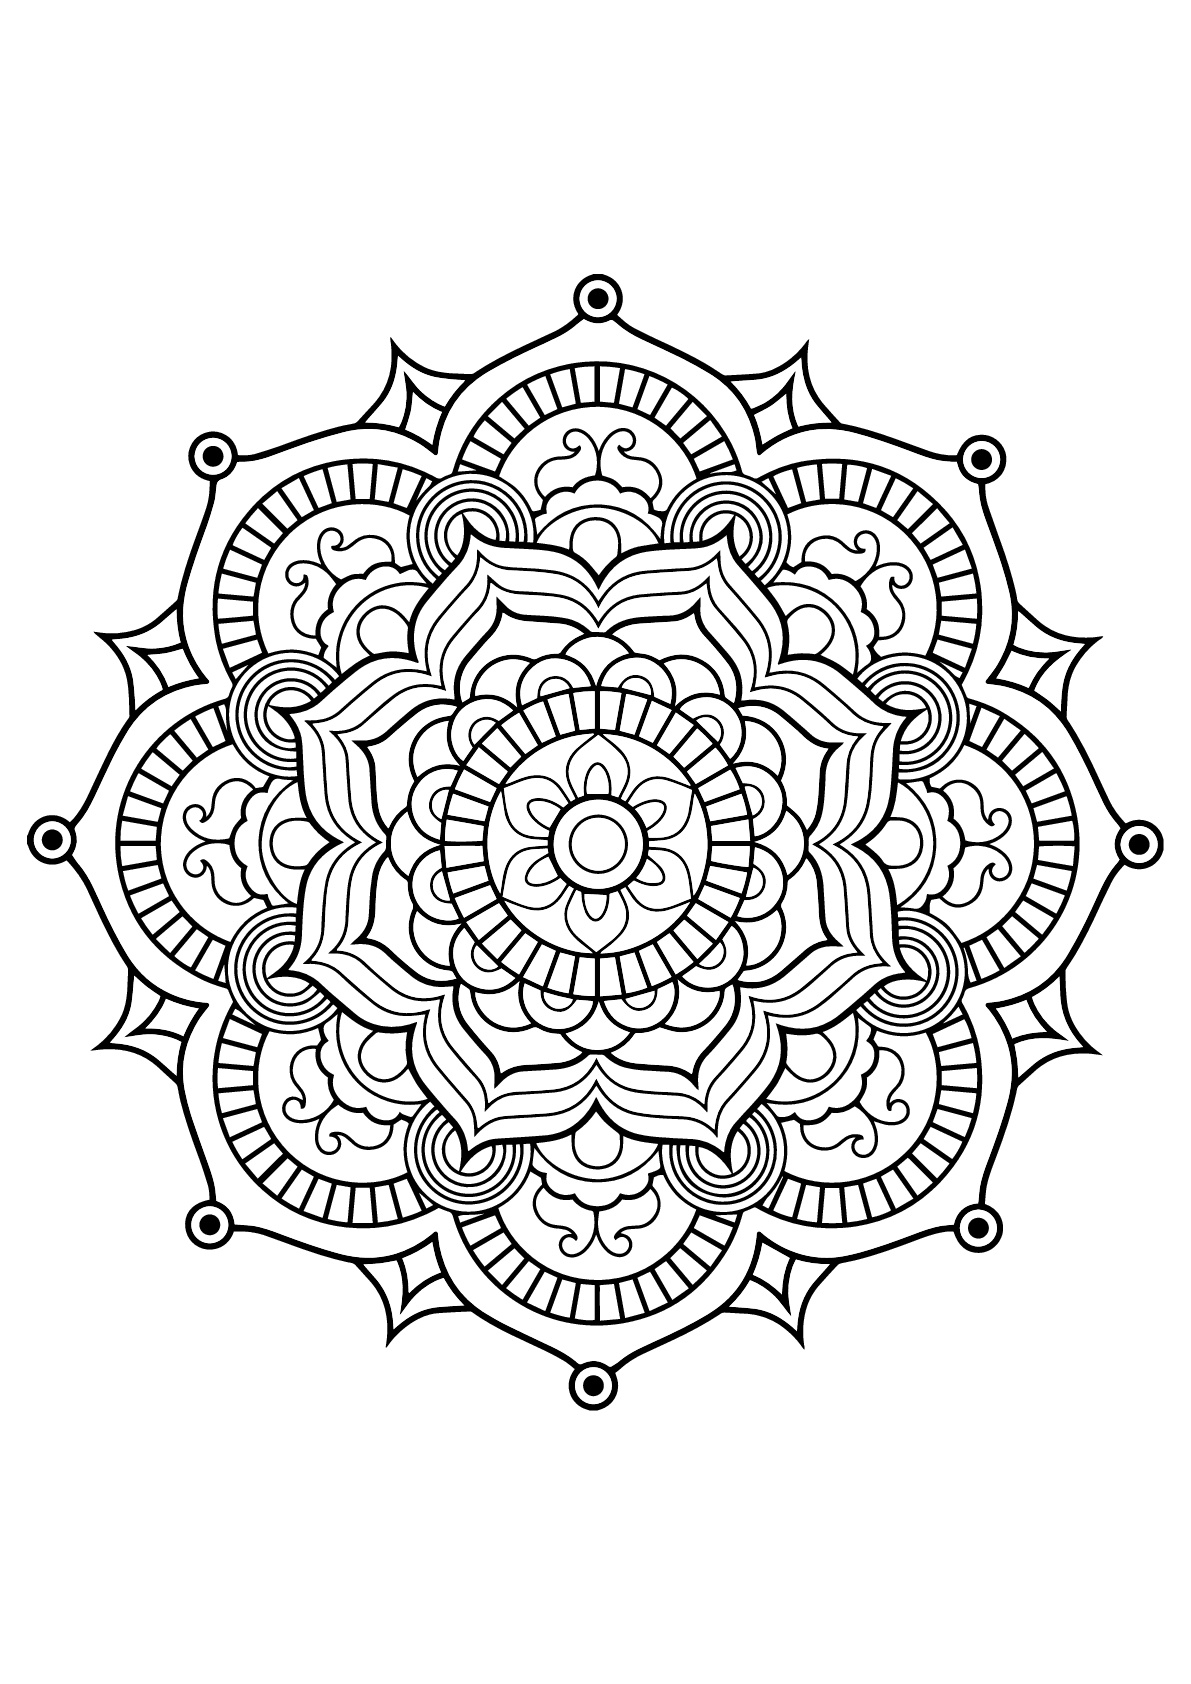 Mandala with vegetal patterns from Free Coloring book for adults